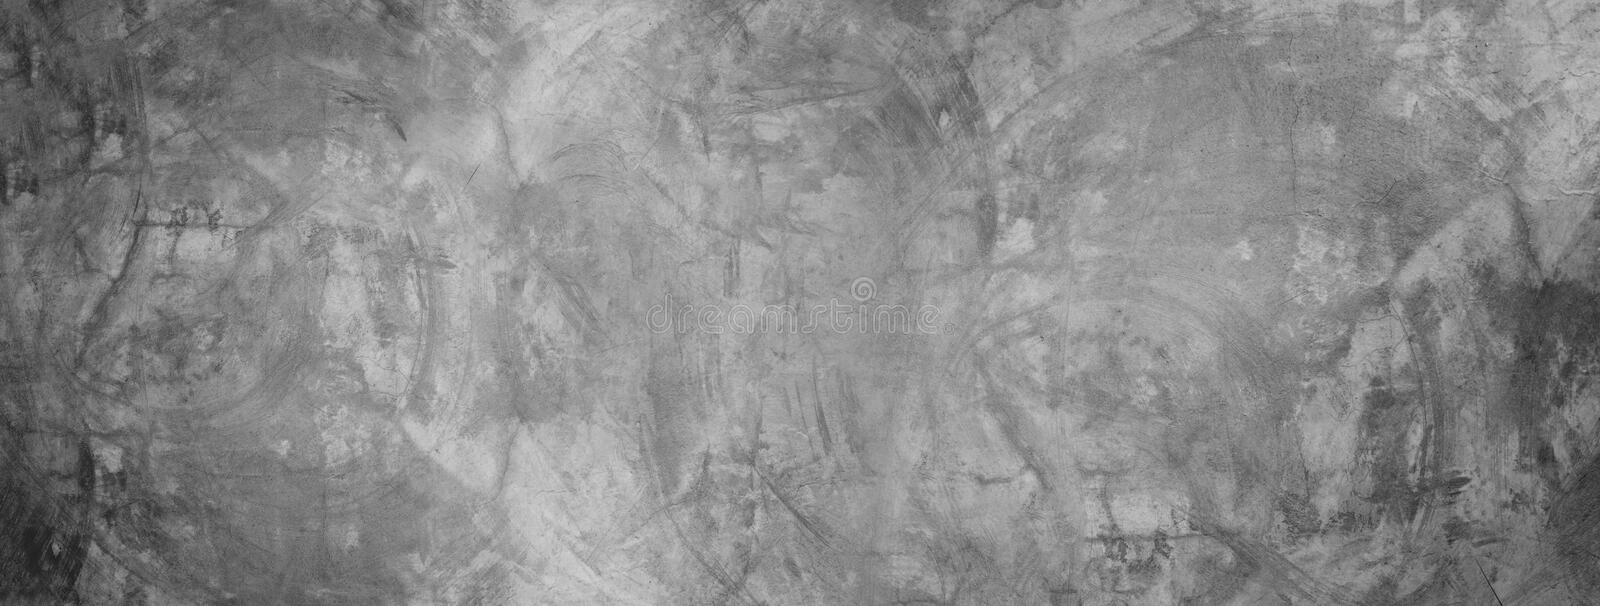 black and gray cement wall banner background royalty free stock image